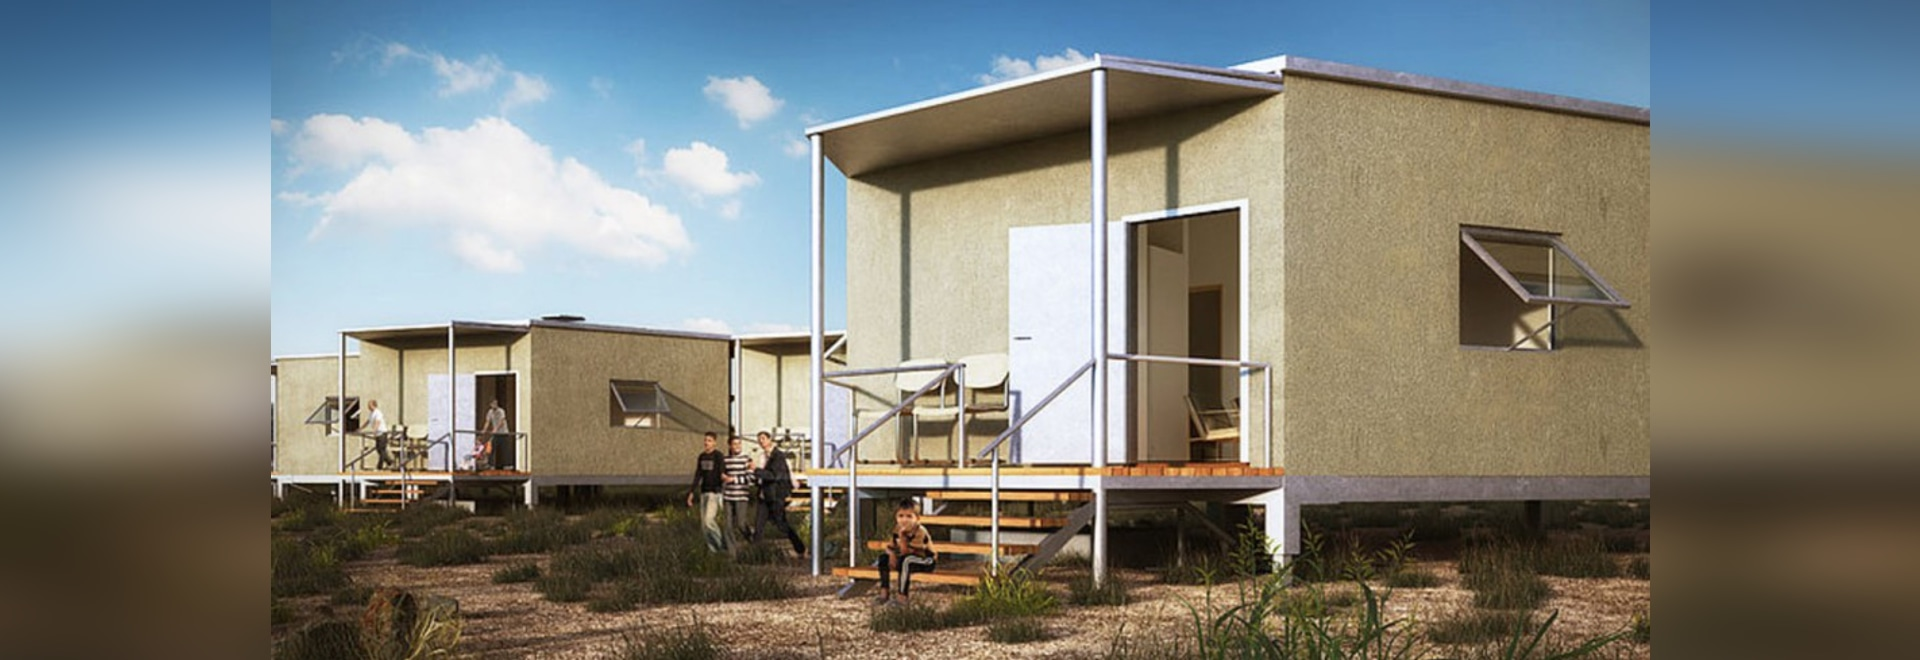 Hex House is an affordable, rapidly deployable solar home for ... on dome home designs, octagon home designs, l-shaped home designs, cylinder home designs, circle home designs, honeycomb home designs, boxy home designs, rectangular home designs, cube home designs, pyramid home designs, triangular home designs, cylindrical home designs, triangle home designs, spherical home designs, spiral home designs, flat home designs, linear home designs, angled home designs,